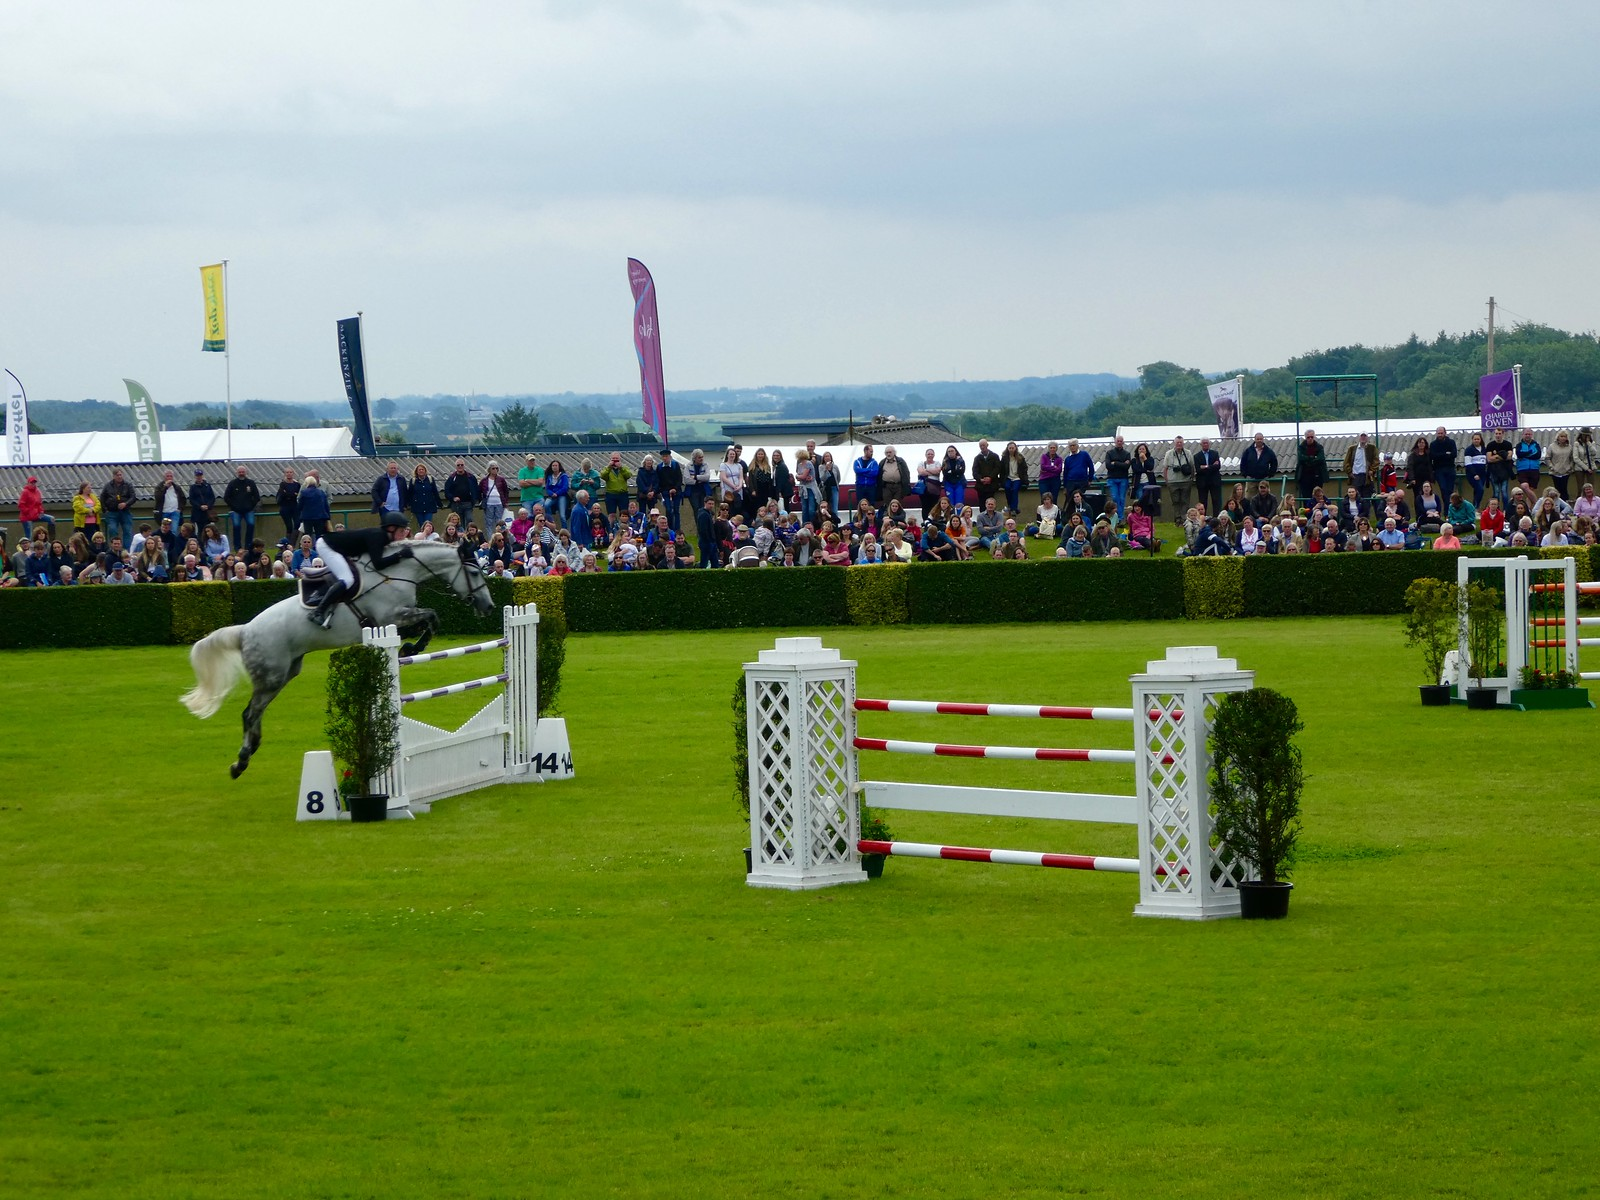 Show Jumping at the Great Yorkshire Show, Harrogate